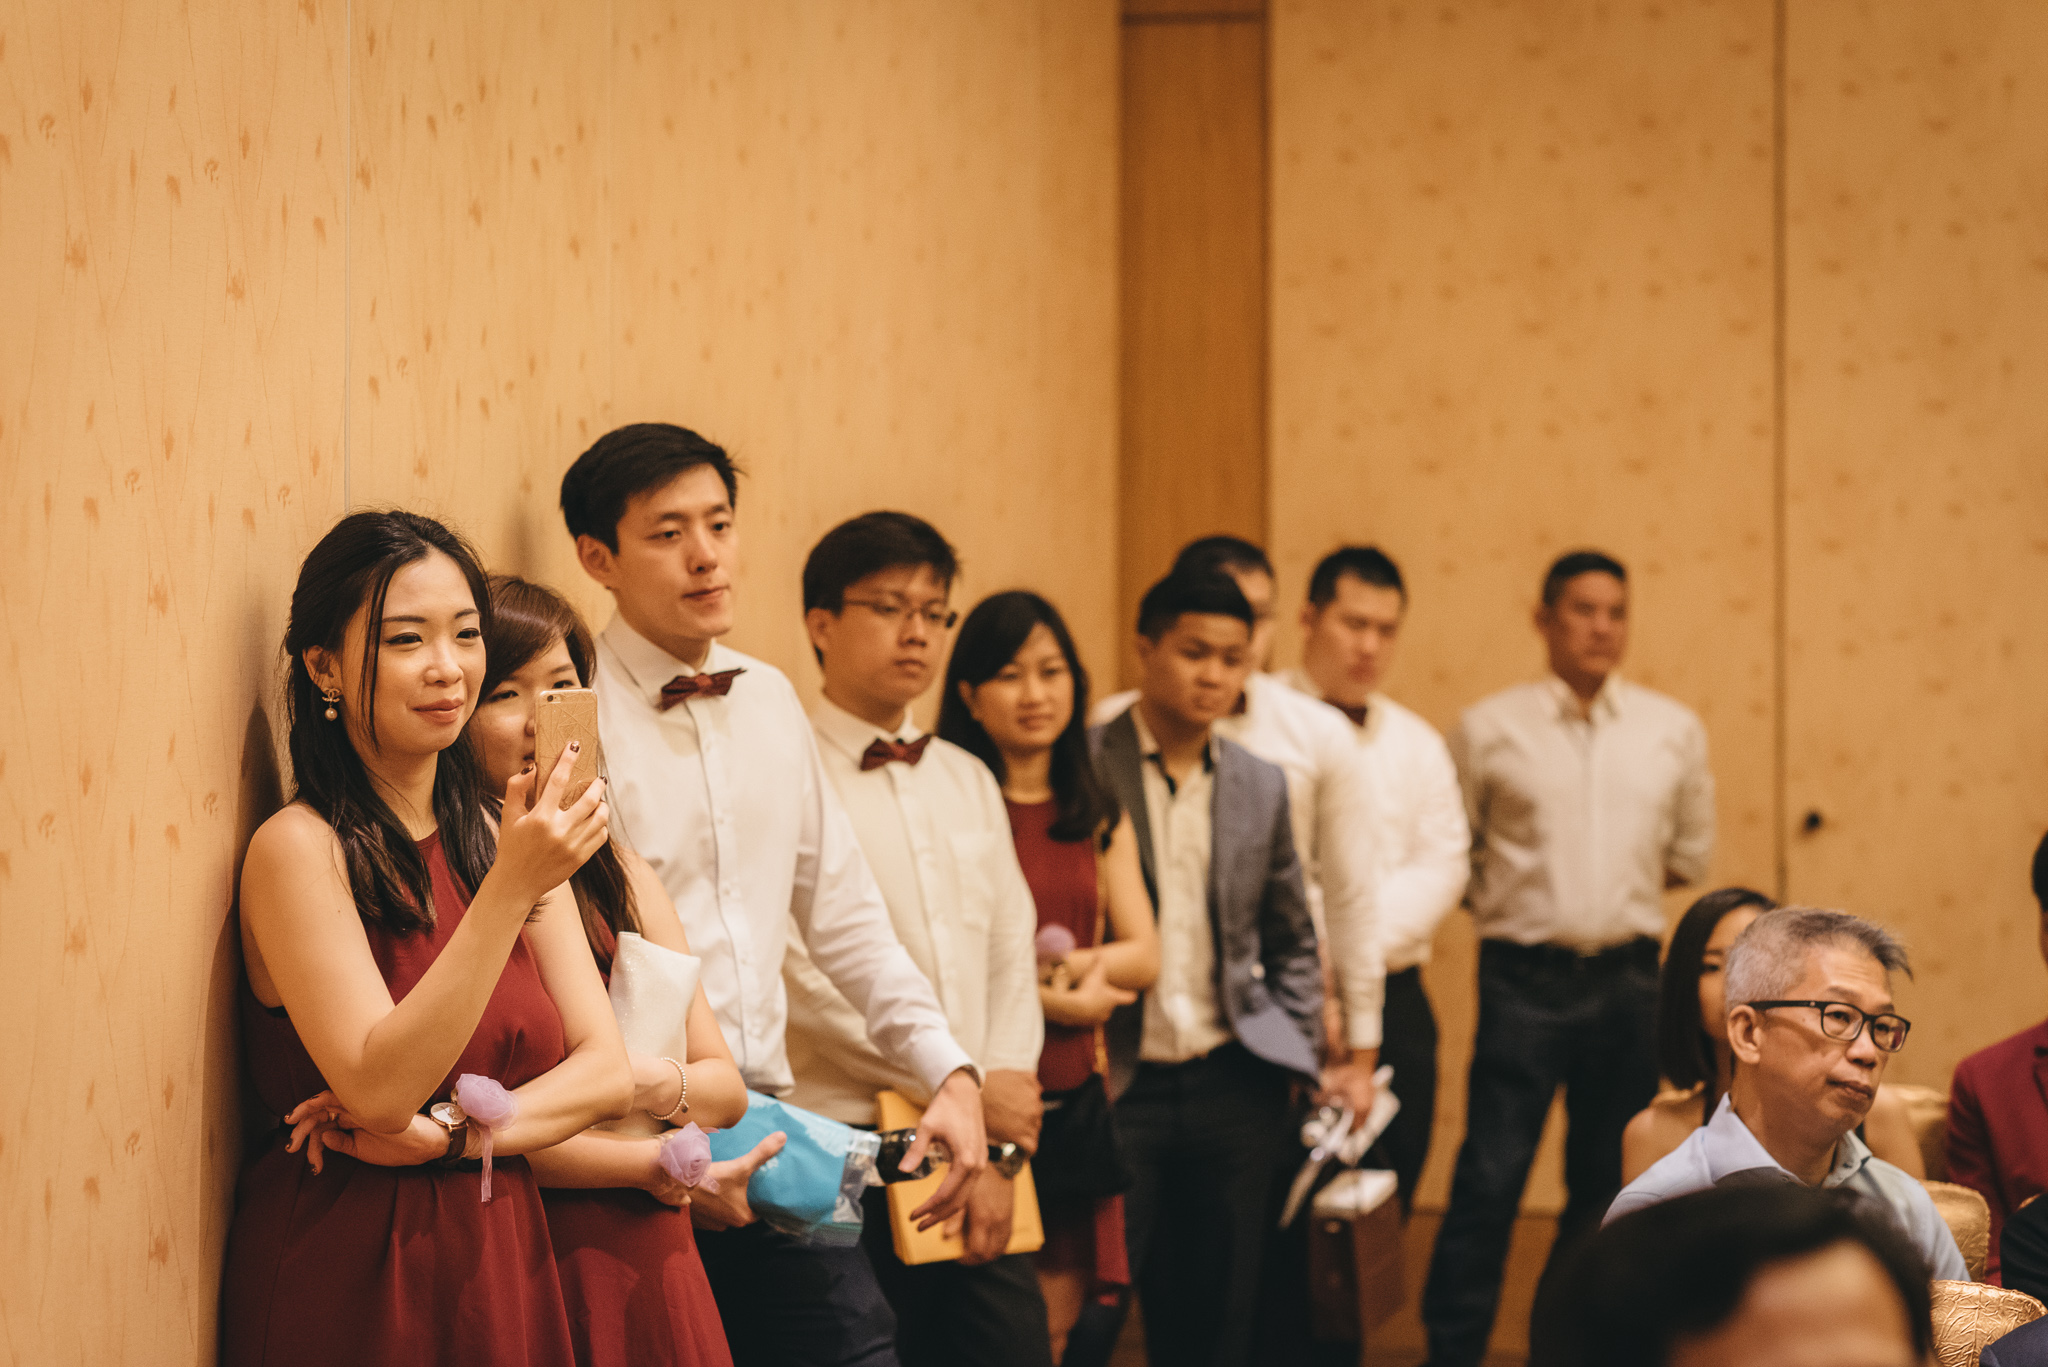 Fiona & Terence Wedding Day Highlights (resized for sharing) - 176.jpg